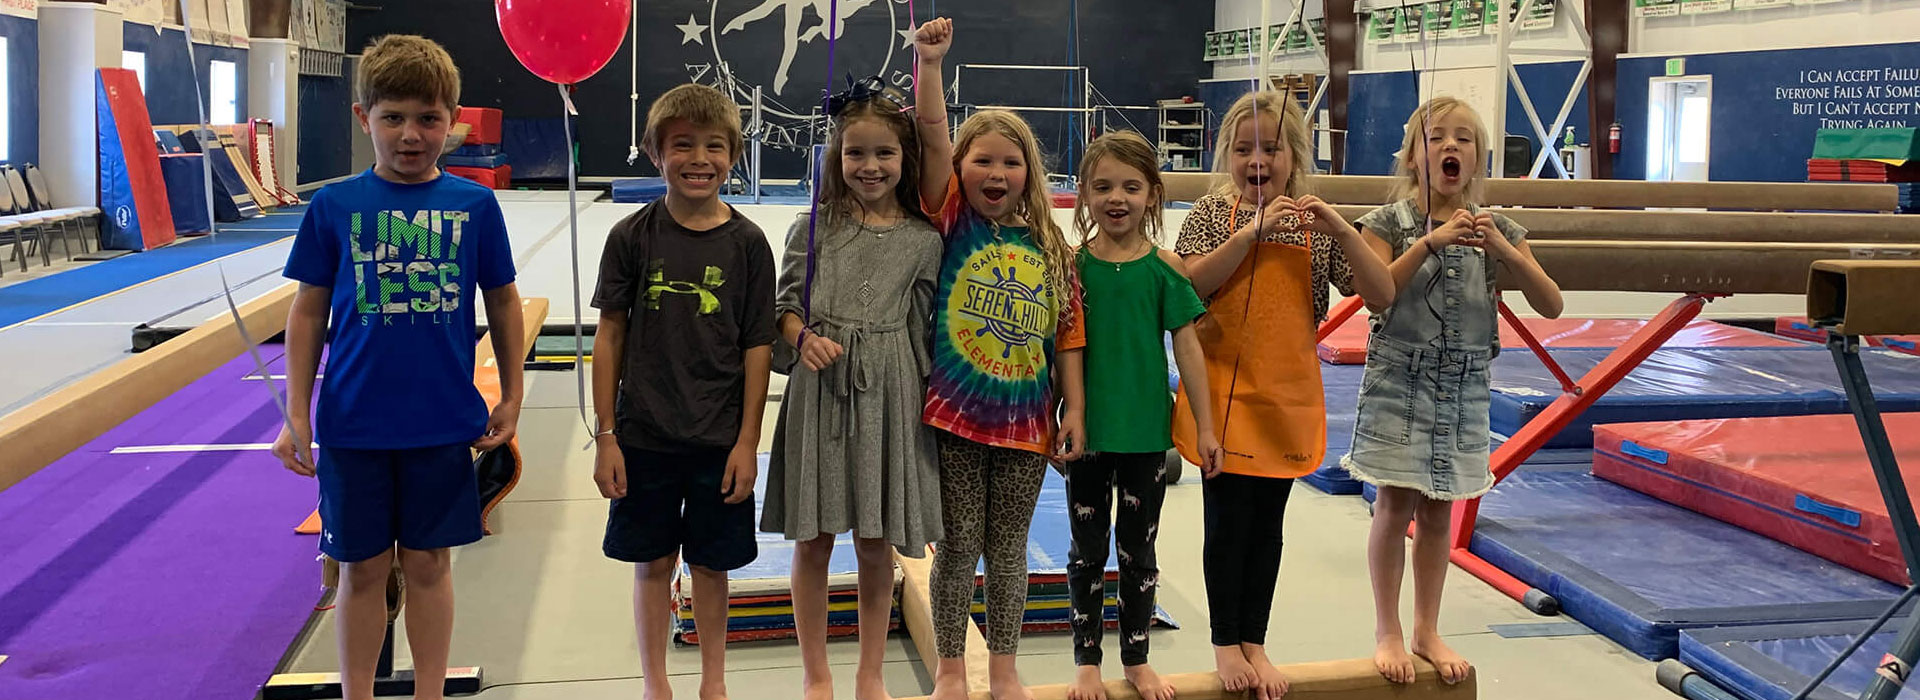 Gymnastics Training in Lakeway, TX close to Beecave and West Austin, TX